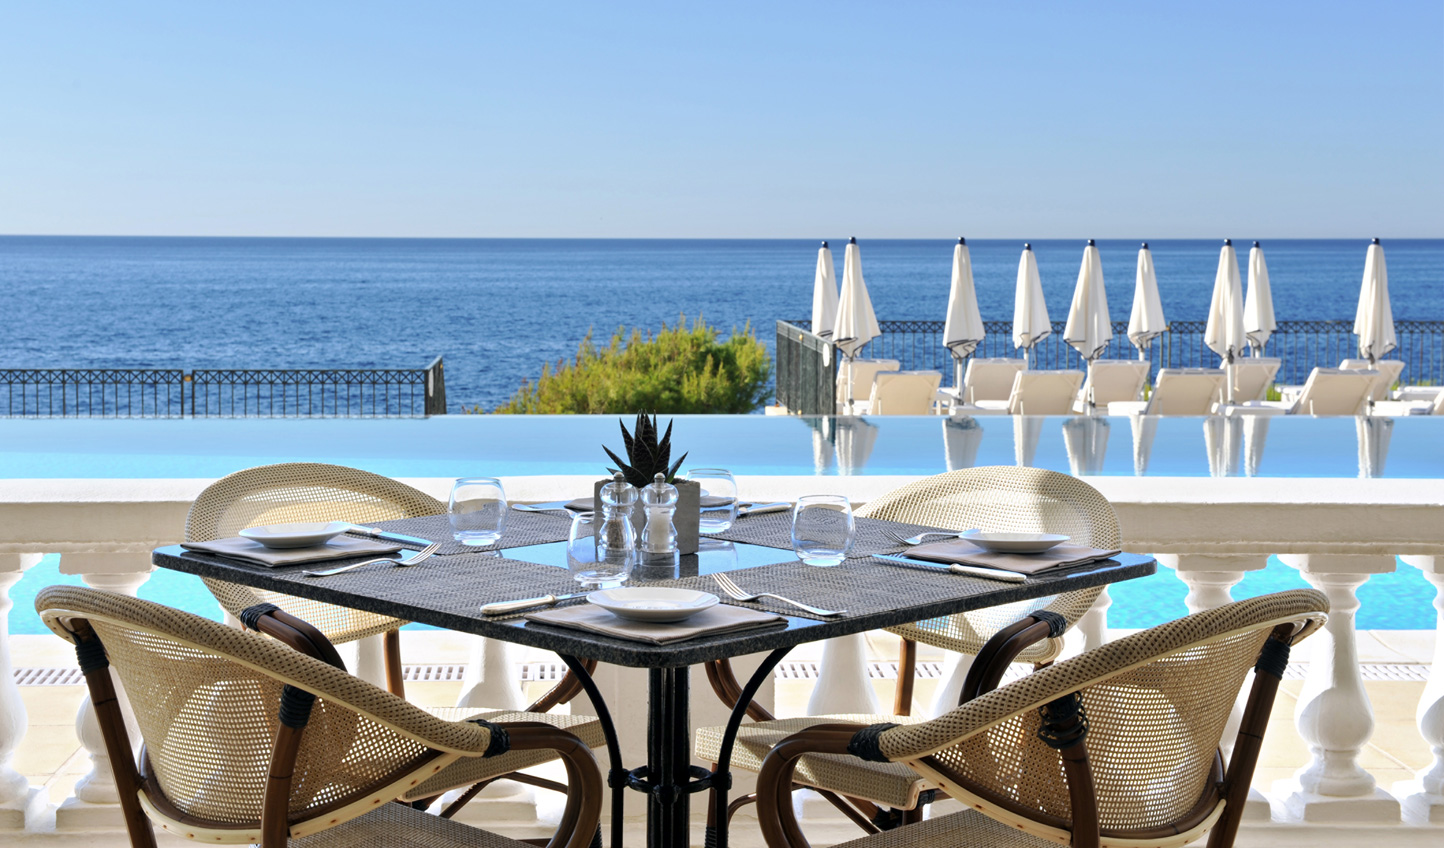 Admire the view from Club Dauphin at Grand Hôtel du Cap-Ferrat